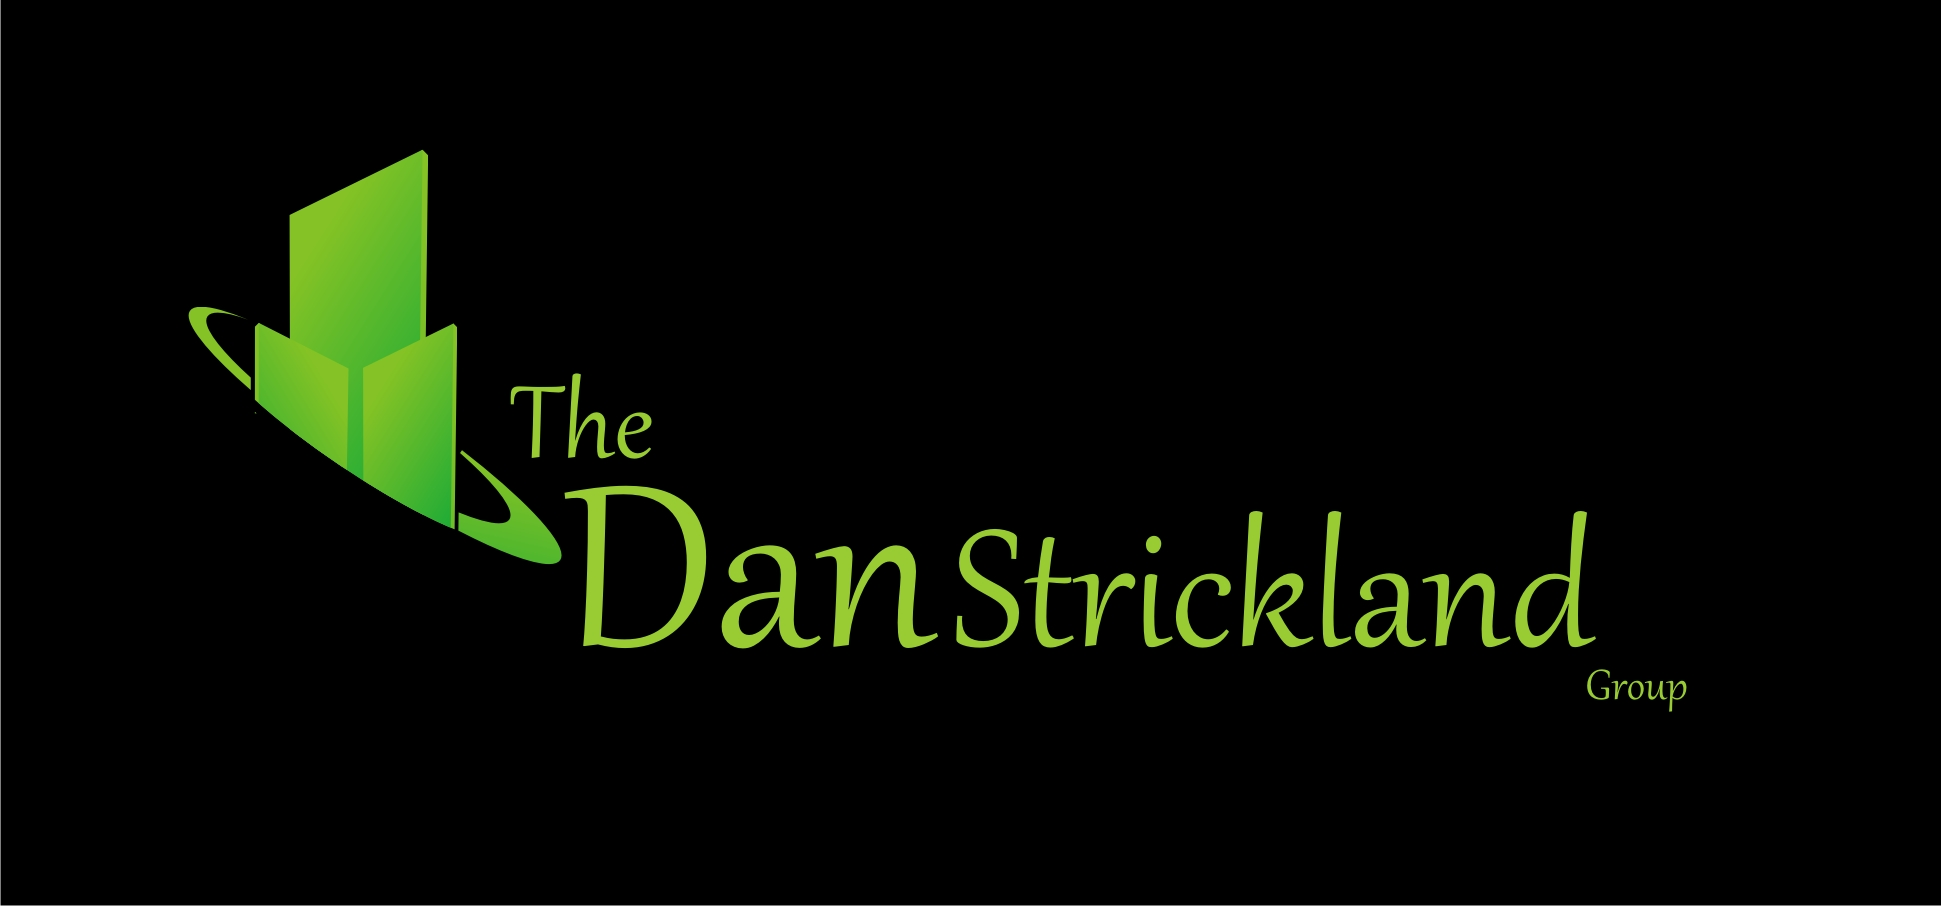 Logo Design by Choirul Jcd - Entry No. 154 in the Logo Design Contest Creative Logo Design for The Dan Strickland Group.